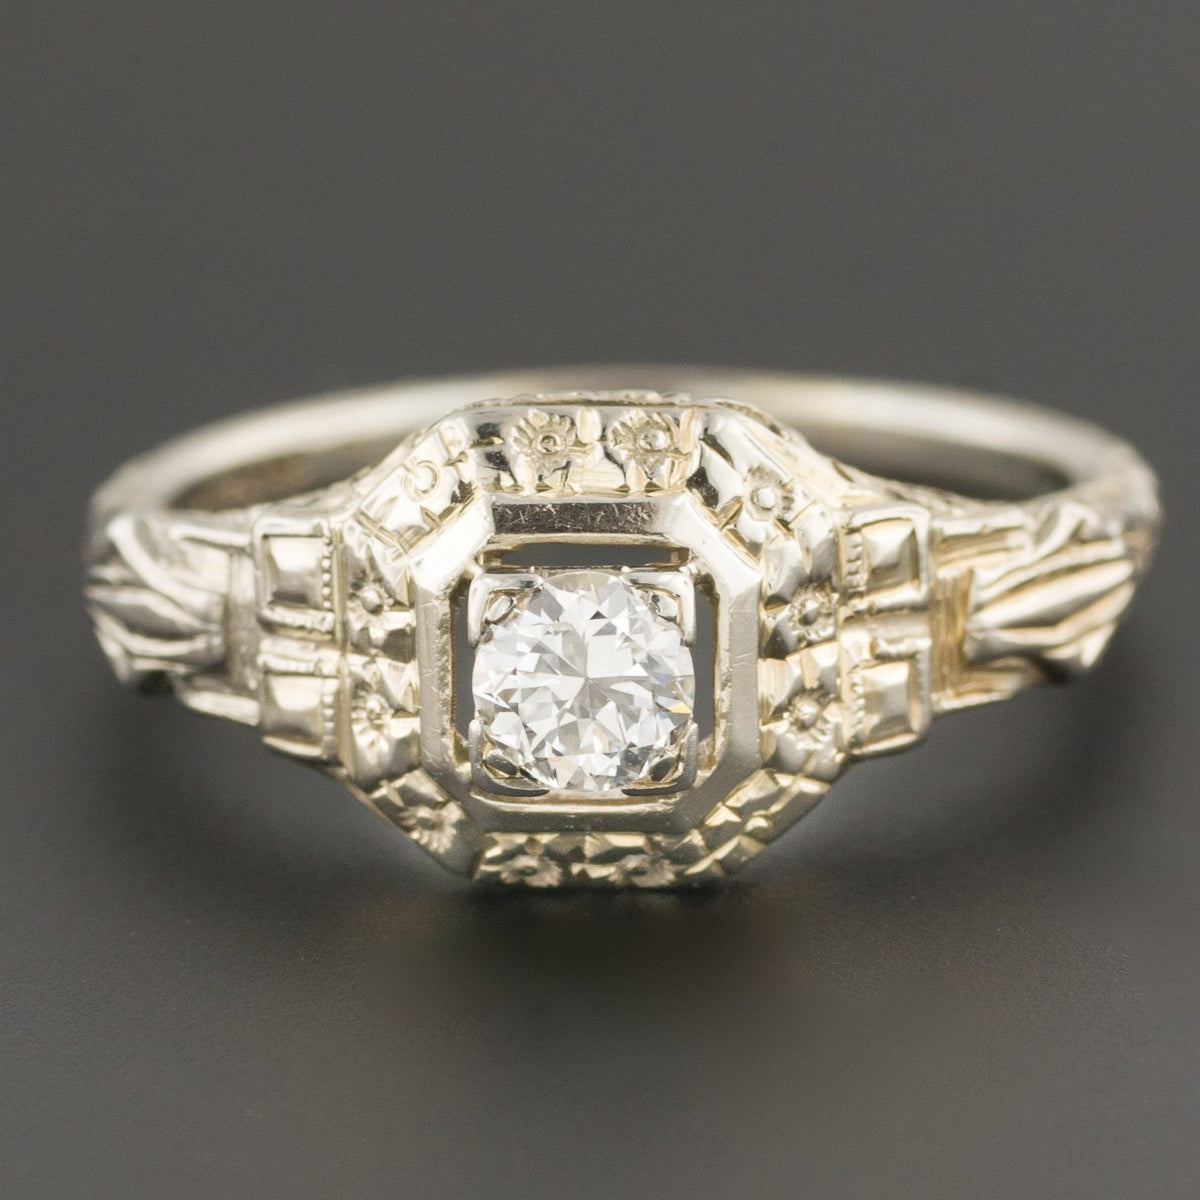 Art Deco Engagement Ring | Vintage Engagement Ring | 18k White Gold Filigree Ring | Diamond Engagement Ring | Art Deco Diamond Ring